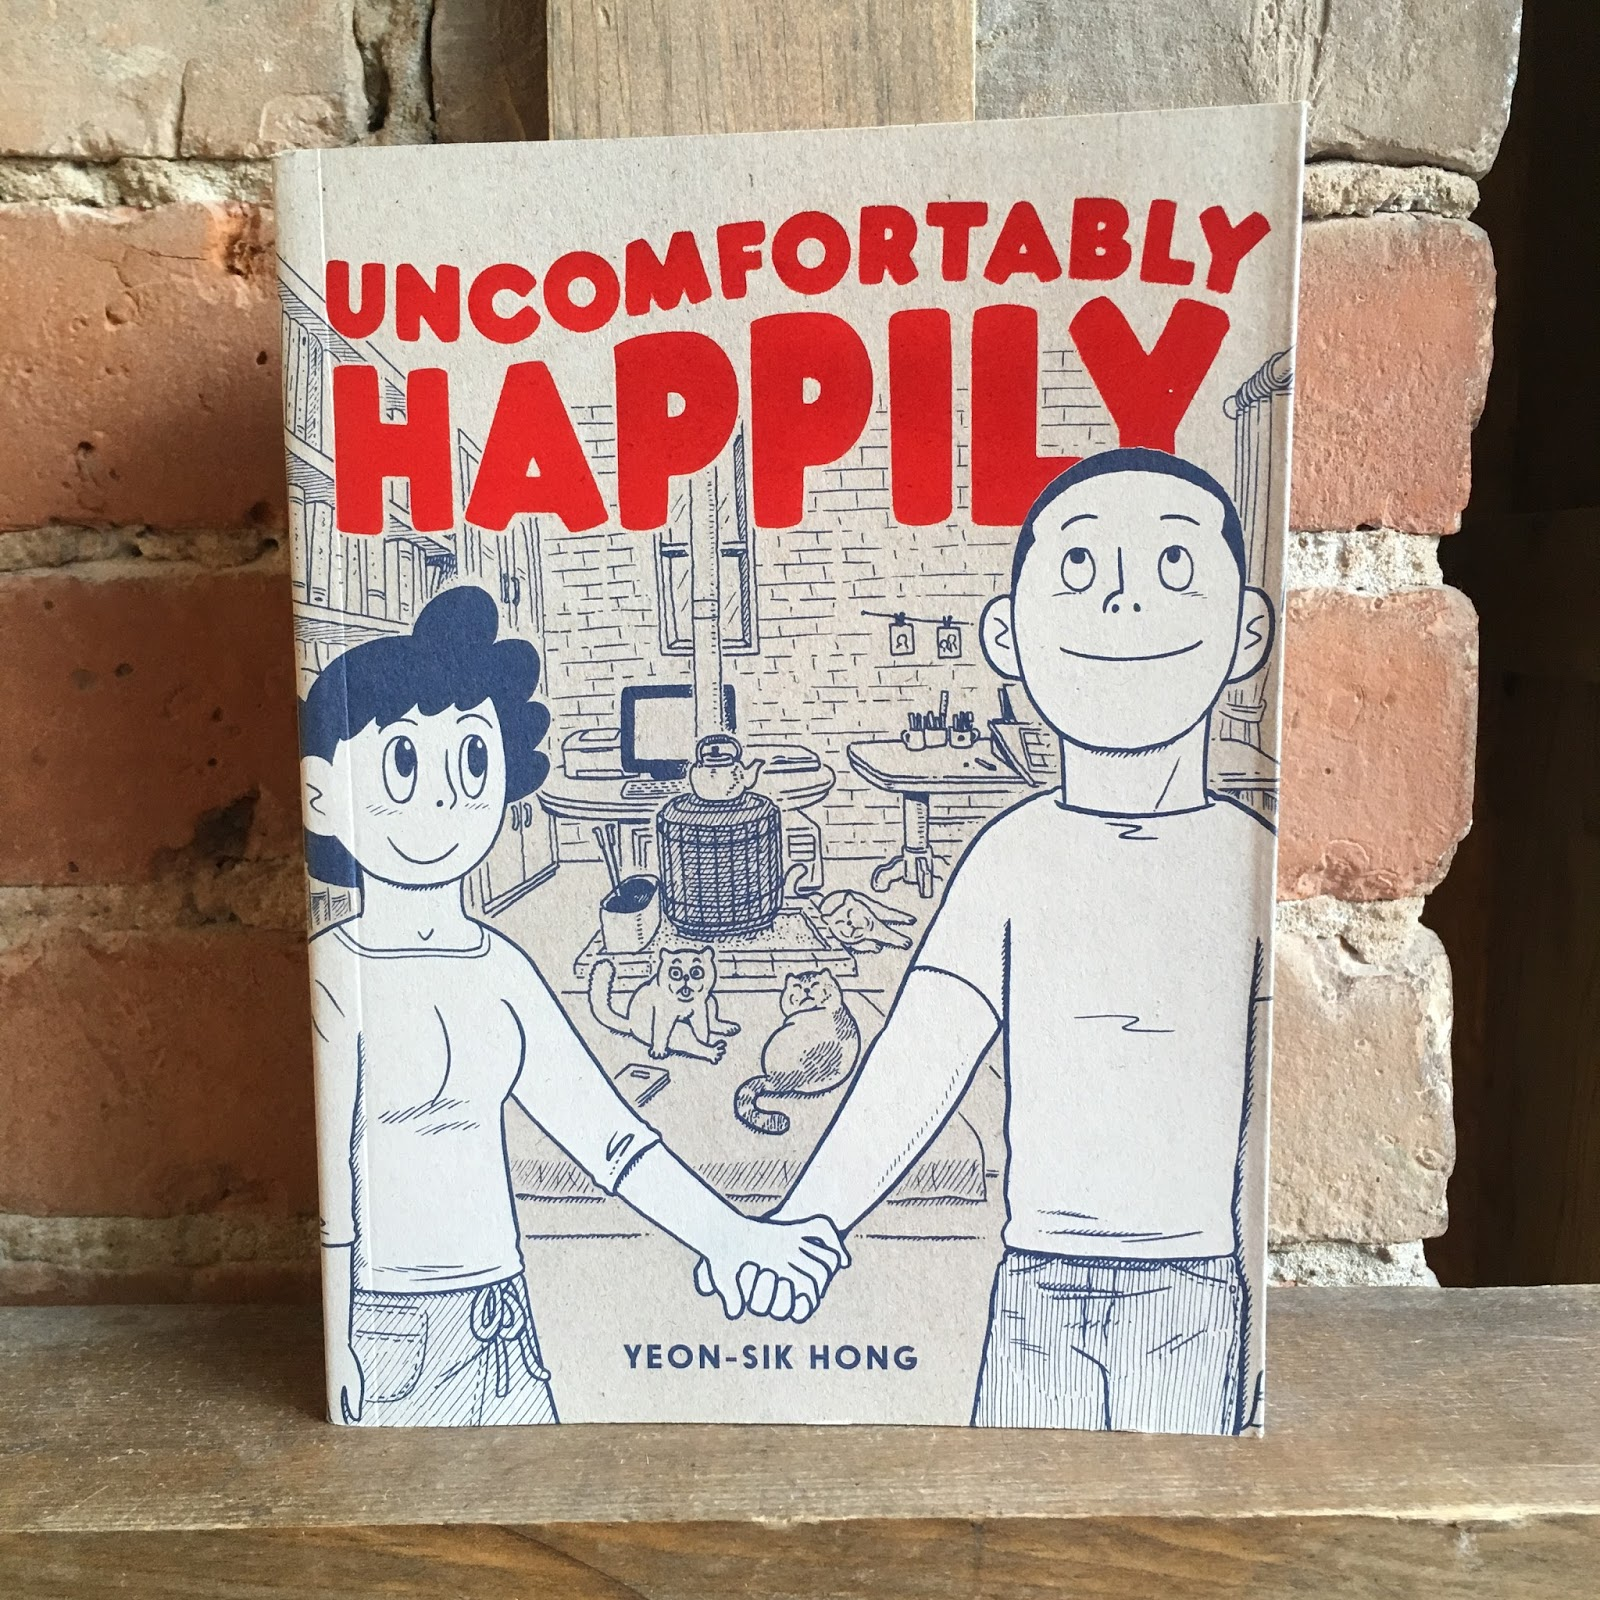 211 Bernard: New D&Q: Uncomfortably Happily by Yeon-Sik Hong!